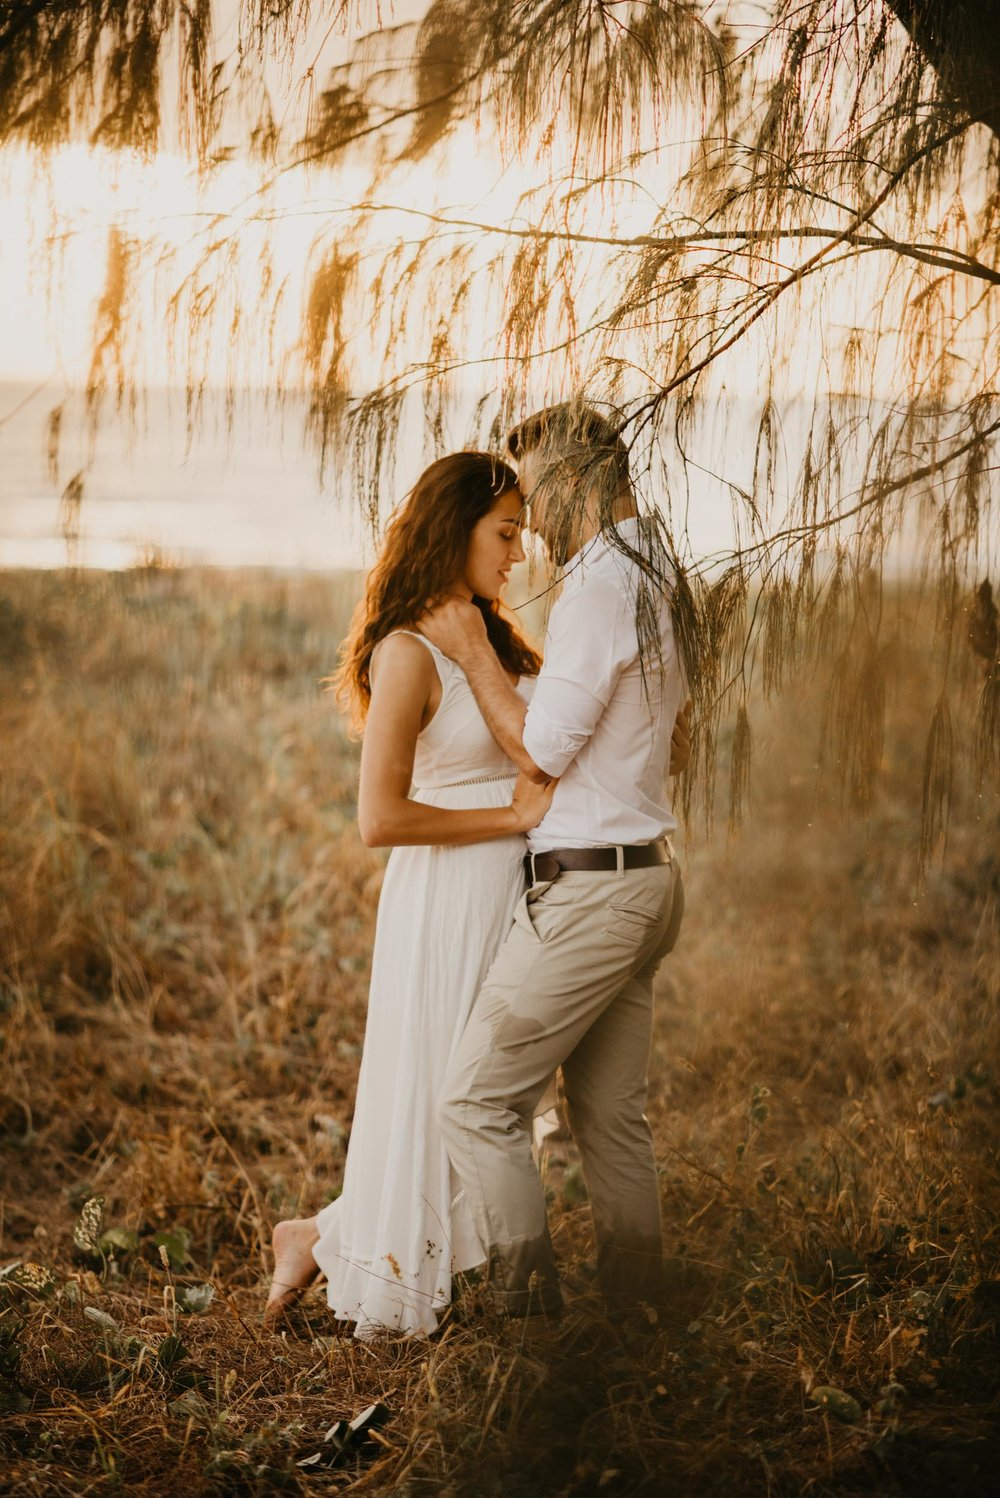 The Raw Photographer - Cairns Wedding Photographer - Engaged Engagement - Beach location - Candid Photography Queensland-22.jpg